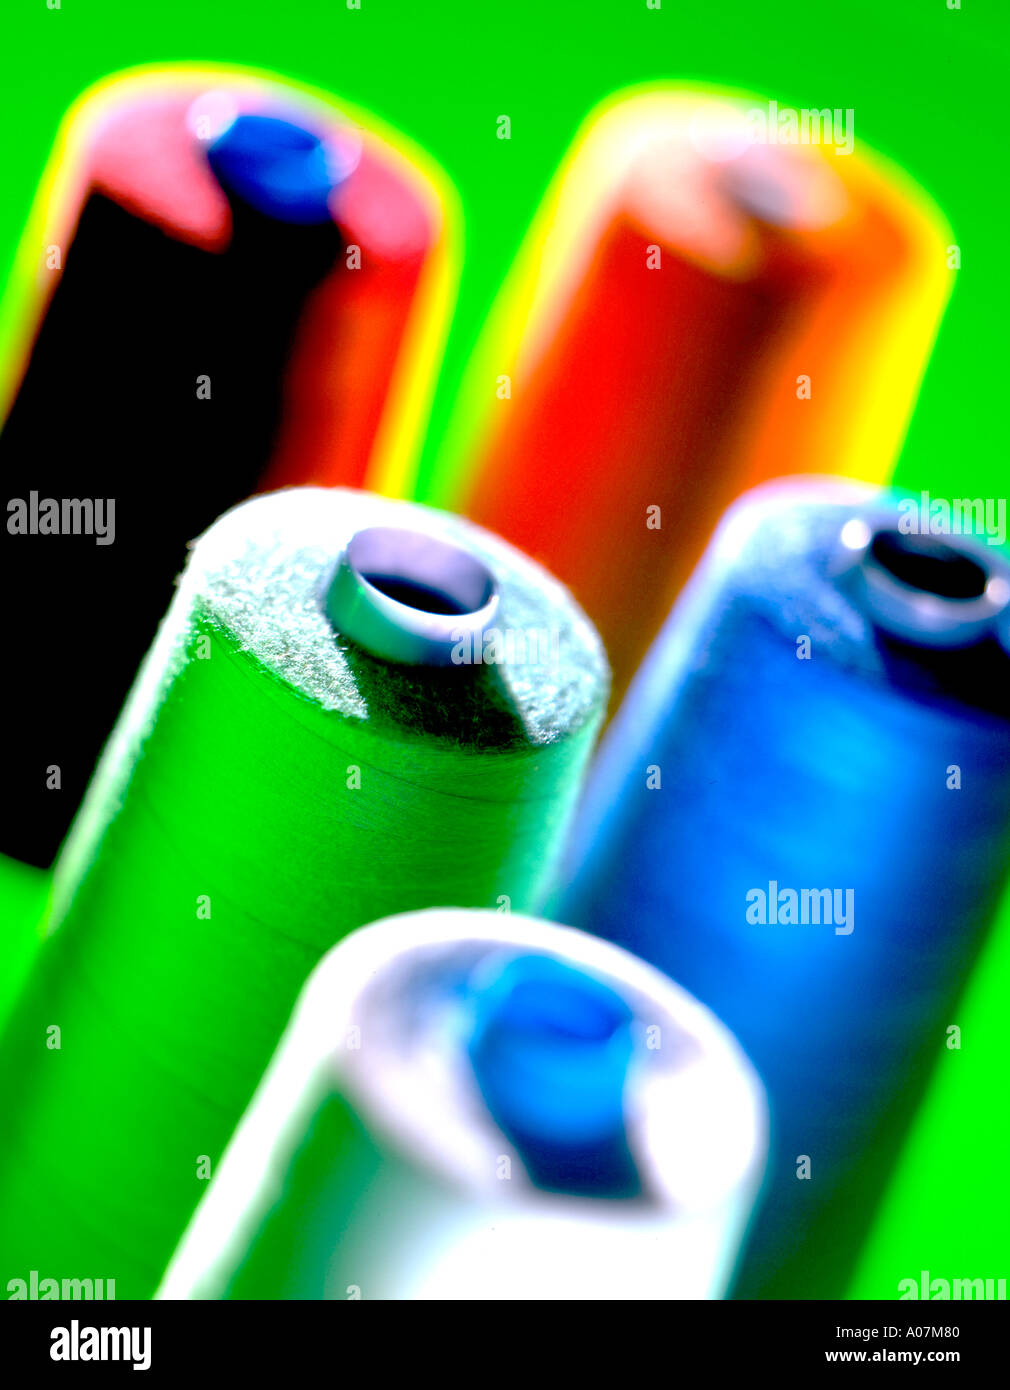 A brightly coloured photograph of various still life items. - Stock Image